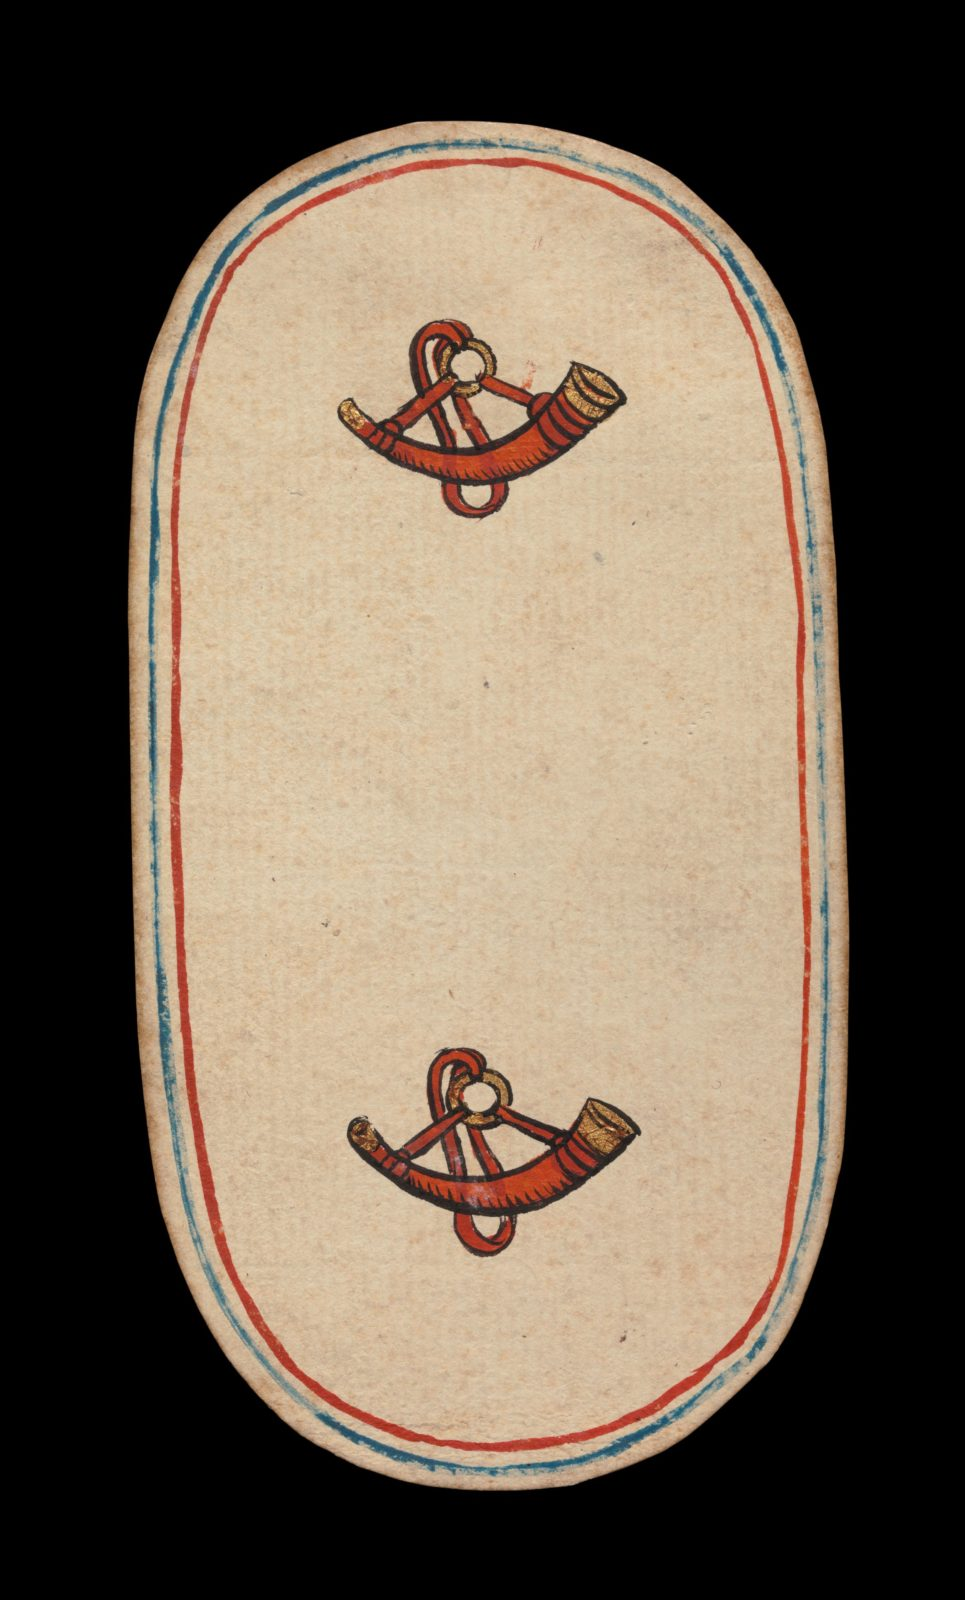 2 of Horns, from The Cloisters Playing Cards